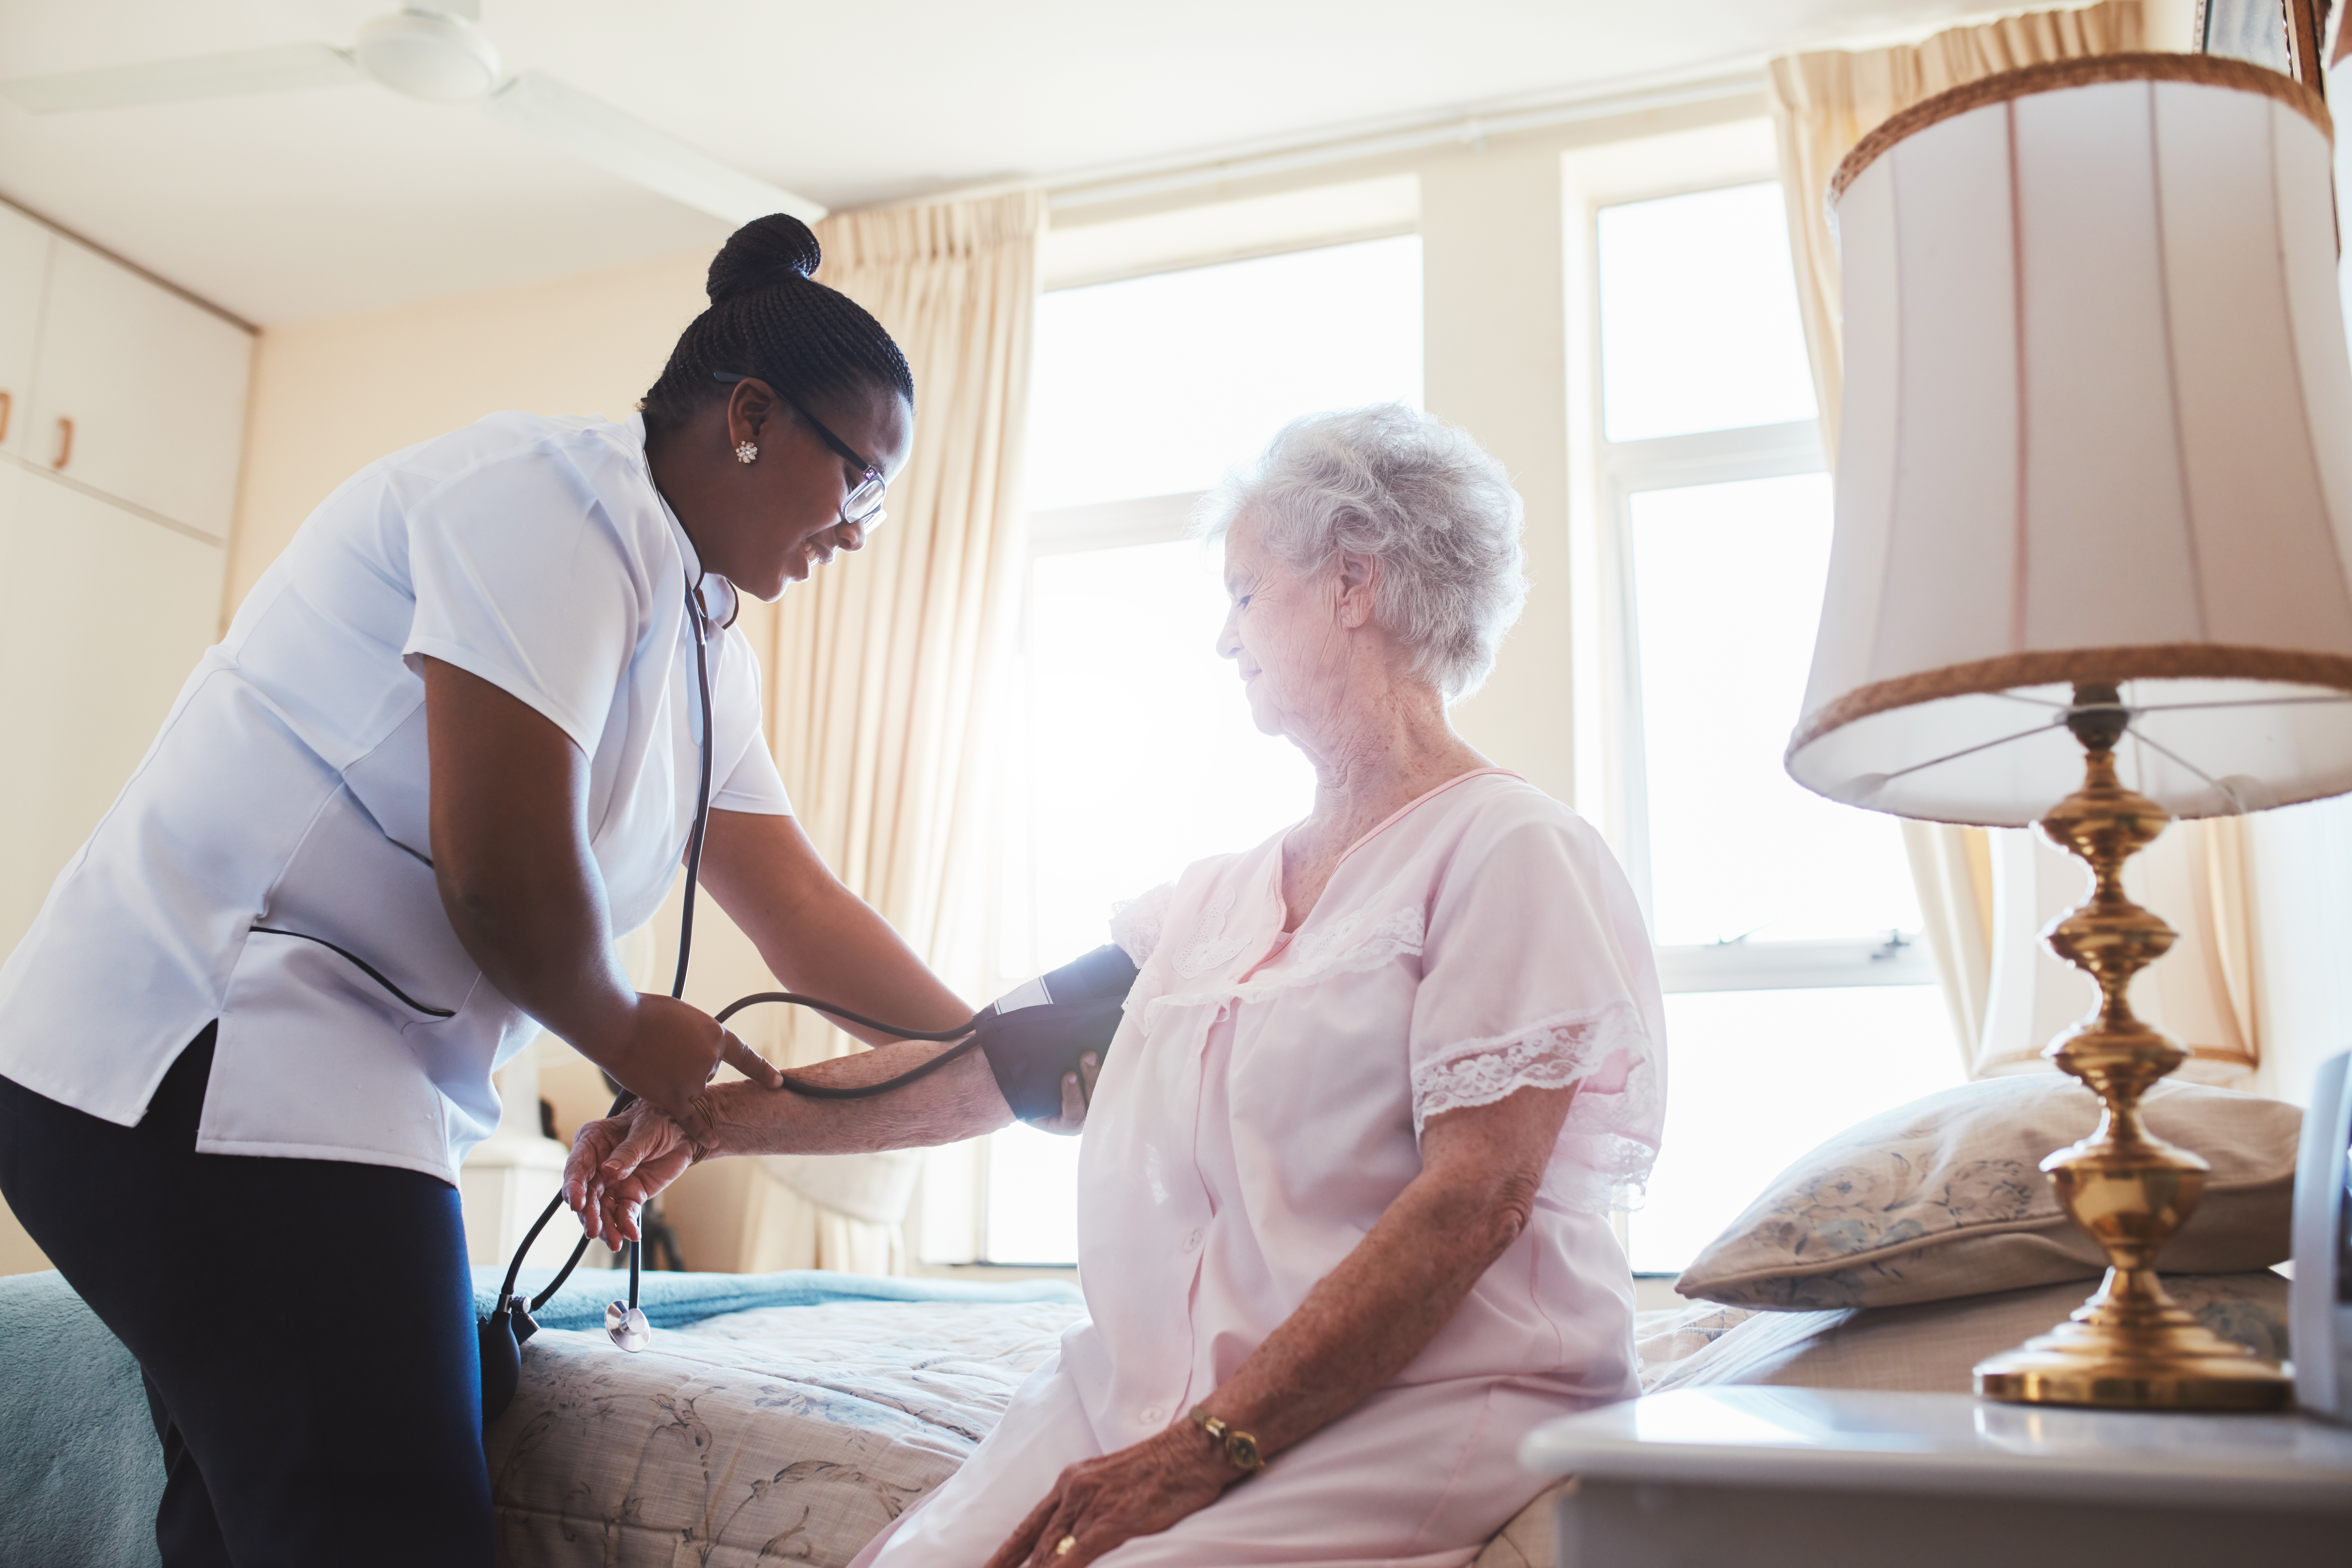 A caregiver taking her patient's blood pressure at home.